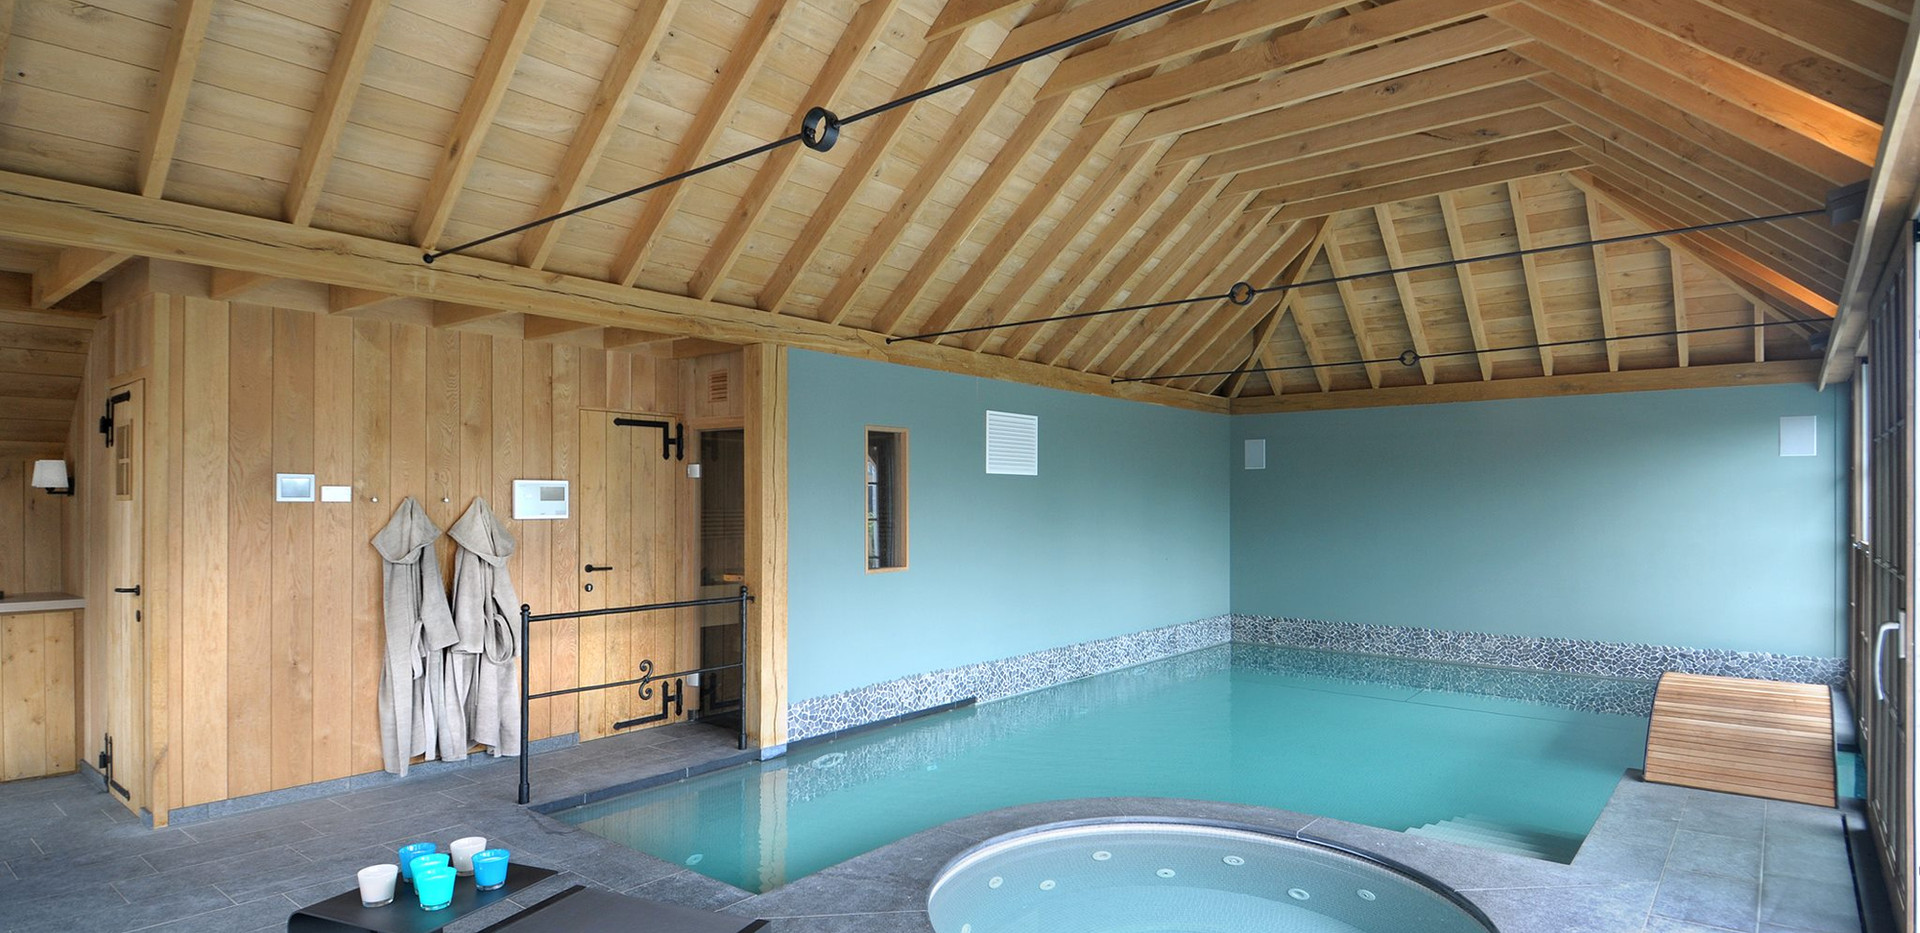 Poolhouse Wellclusive prive sauna Rijkevorsel